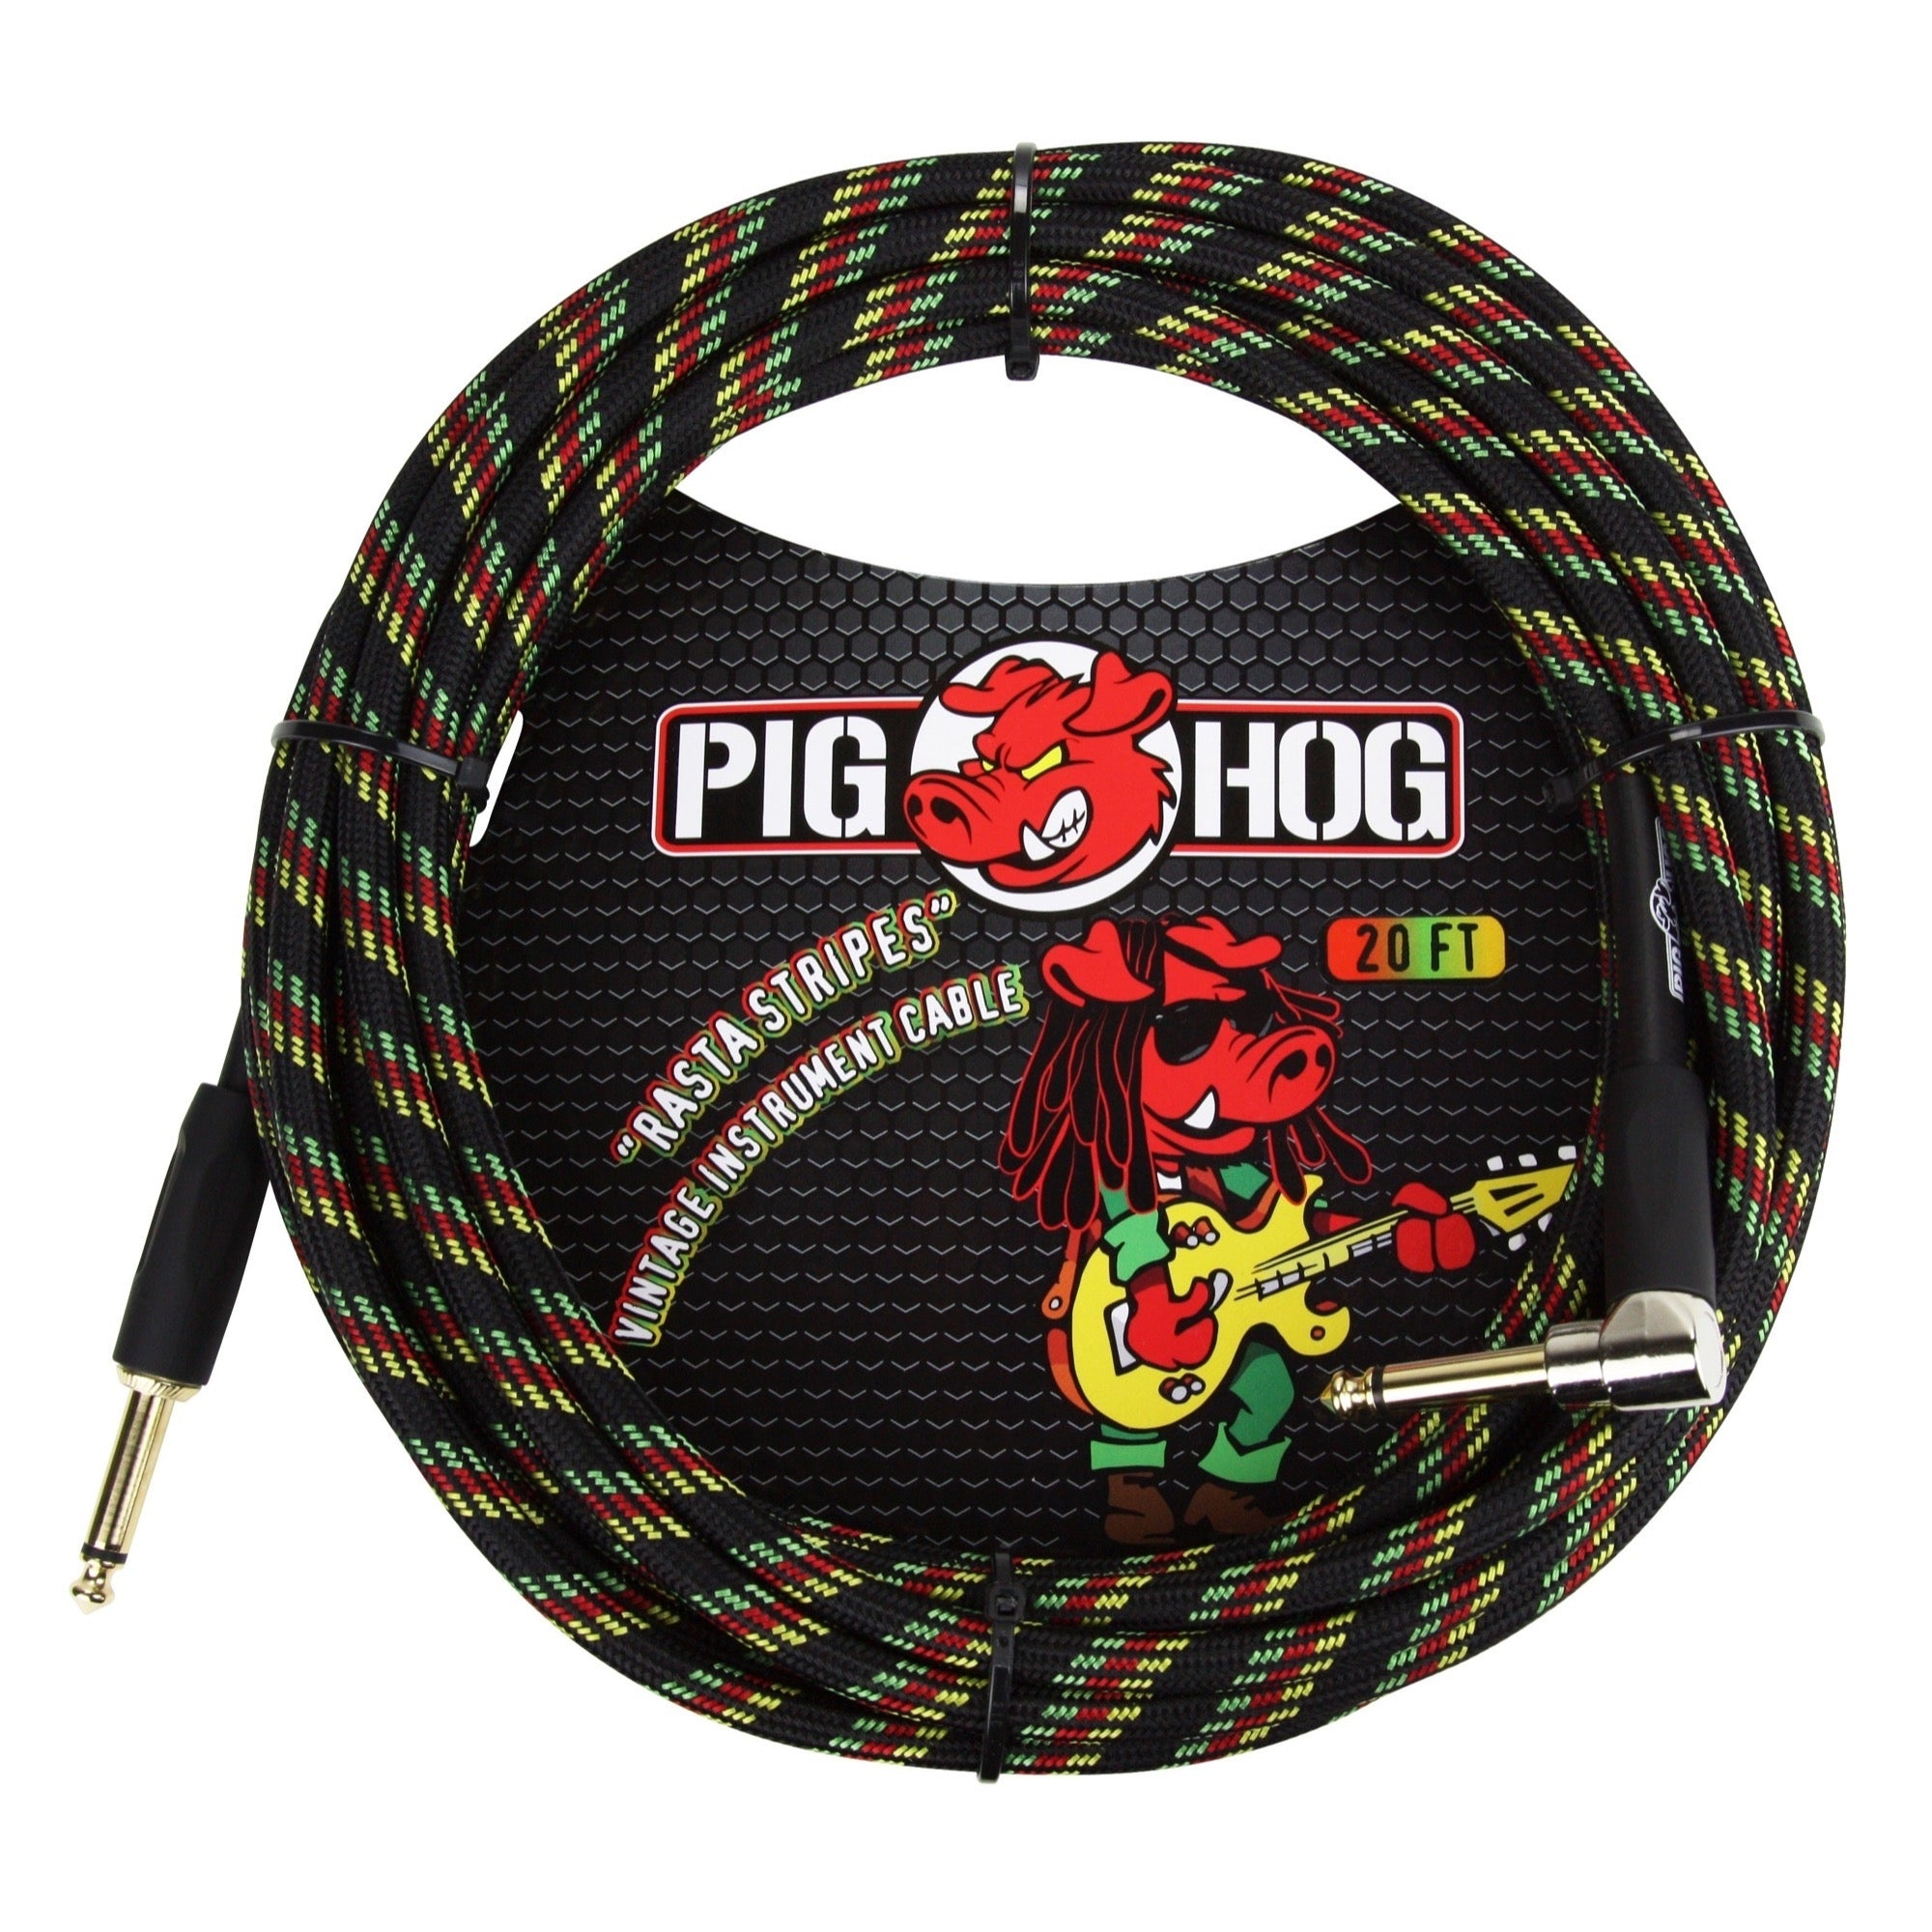 Pig Hog Color Instrument Cable, 1/4 Inch Straight to 1/4 Inch Right Angle, Rasta Stripe, 20'